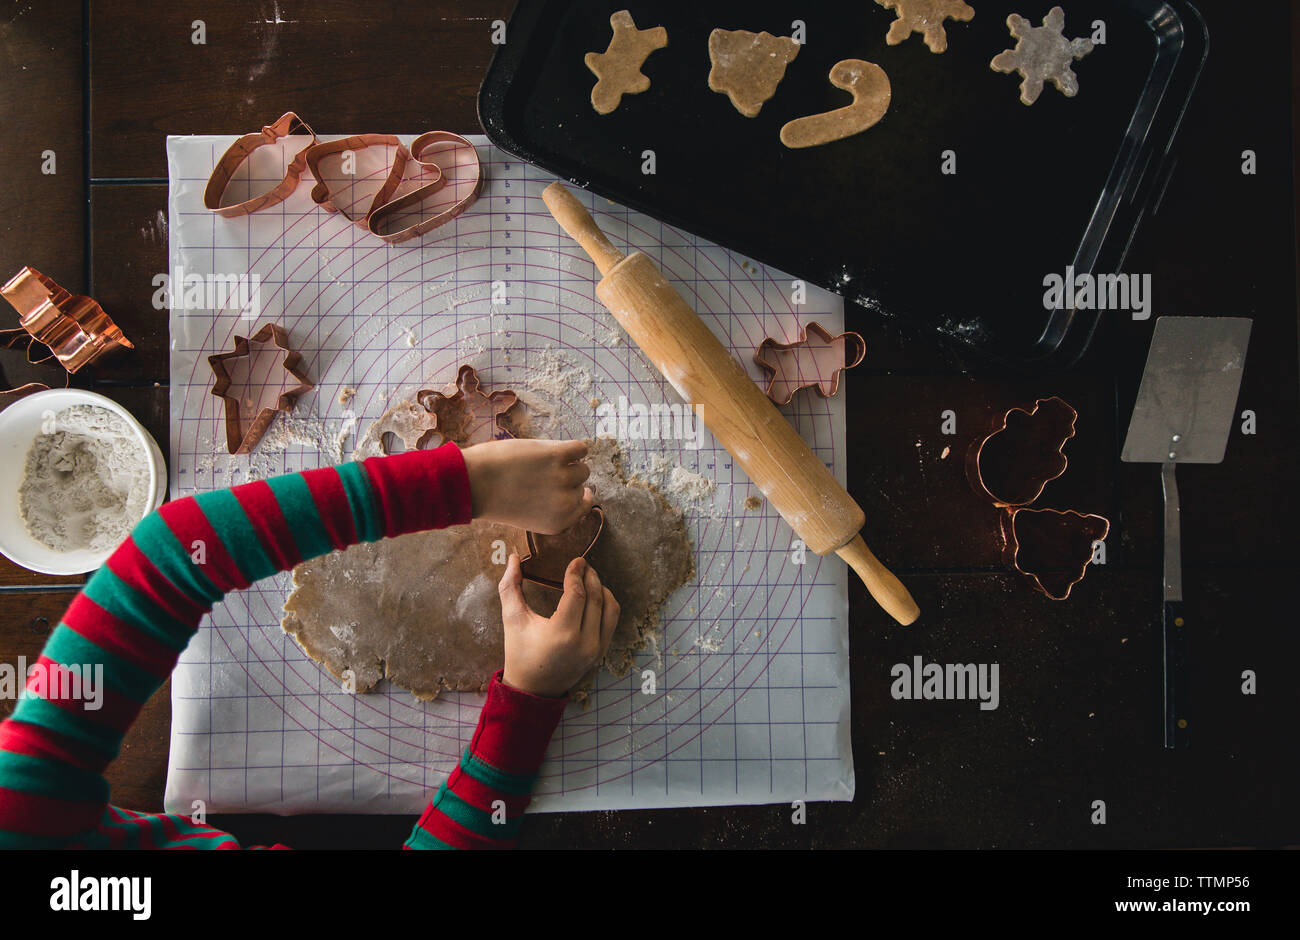 Cropped hands of boy using pastry cutter while making cookies on table during Christmas at home - Stock Image